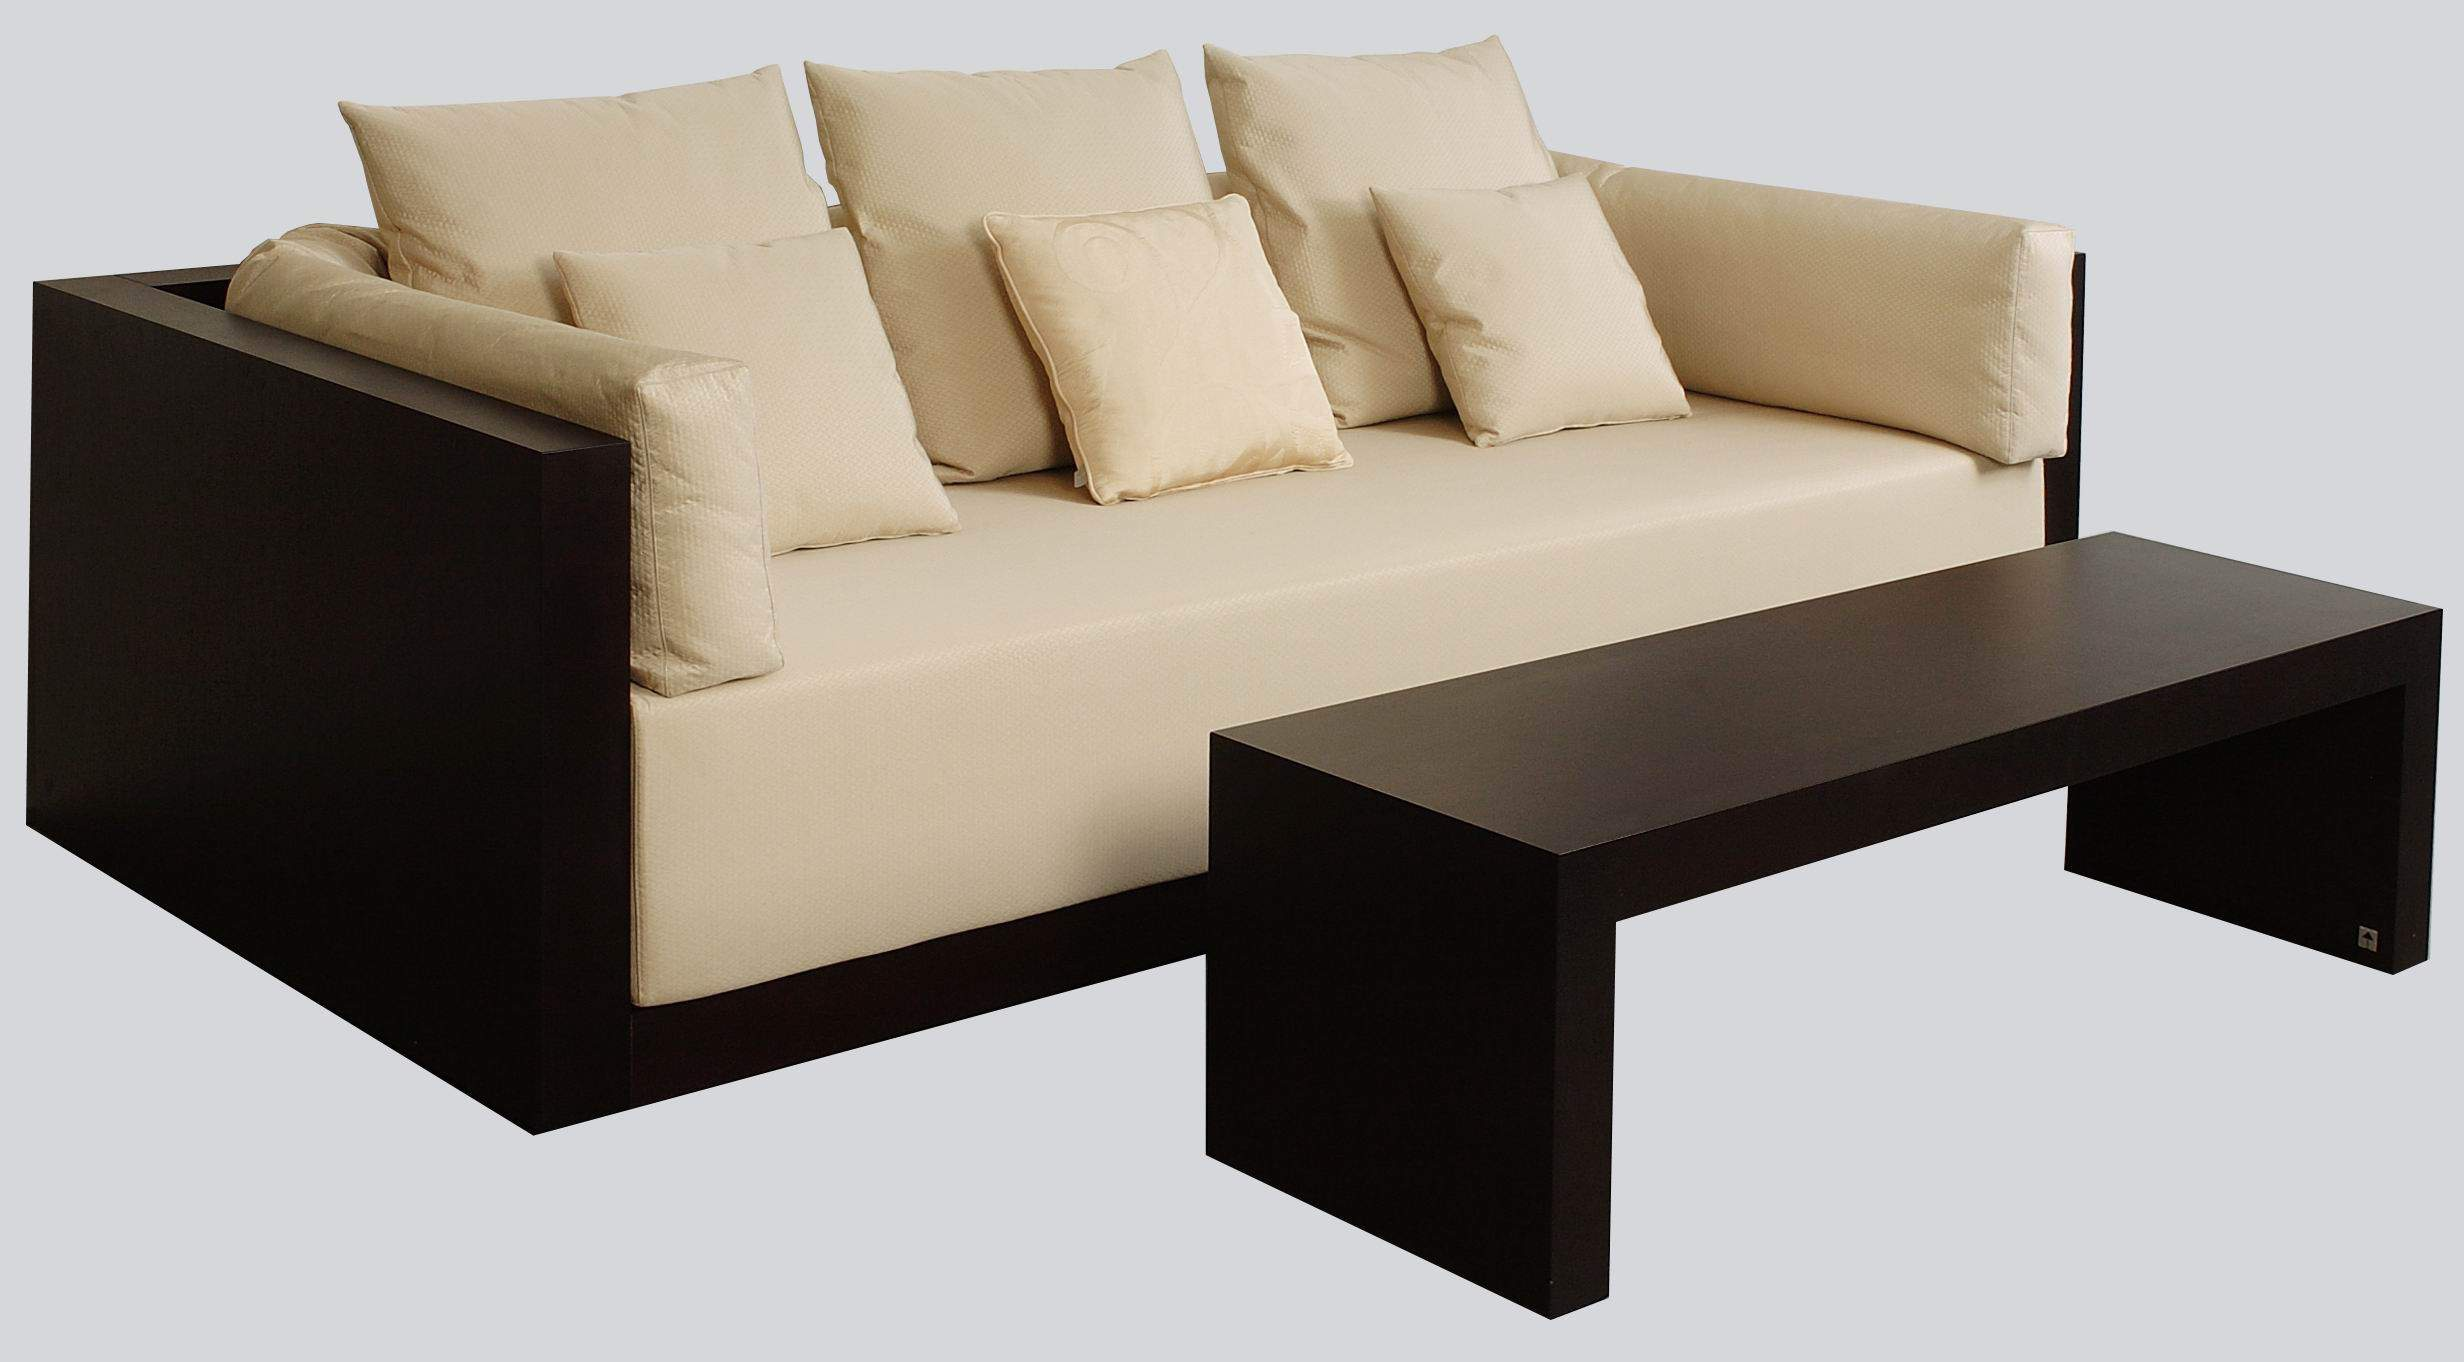 Sydney Three-seater Sofa, Armani Casa